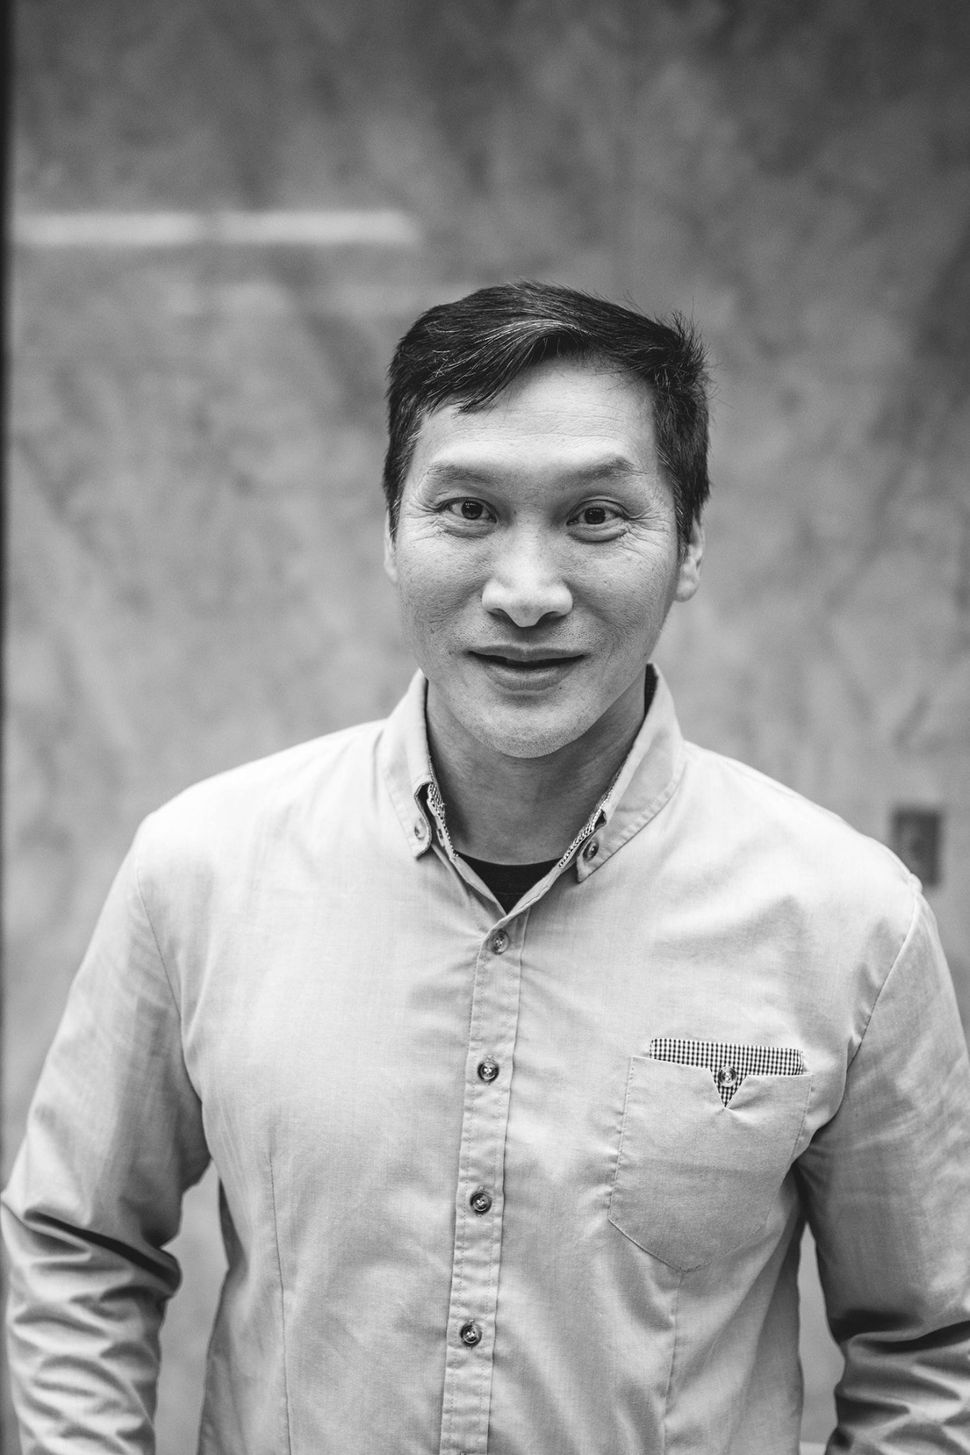 ROOTS co-founder Eddy Zheng.